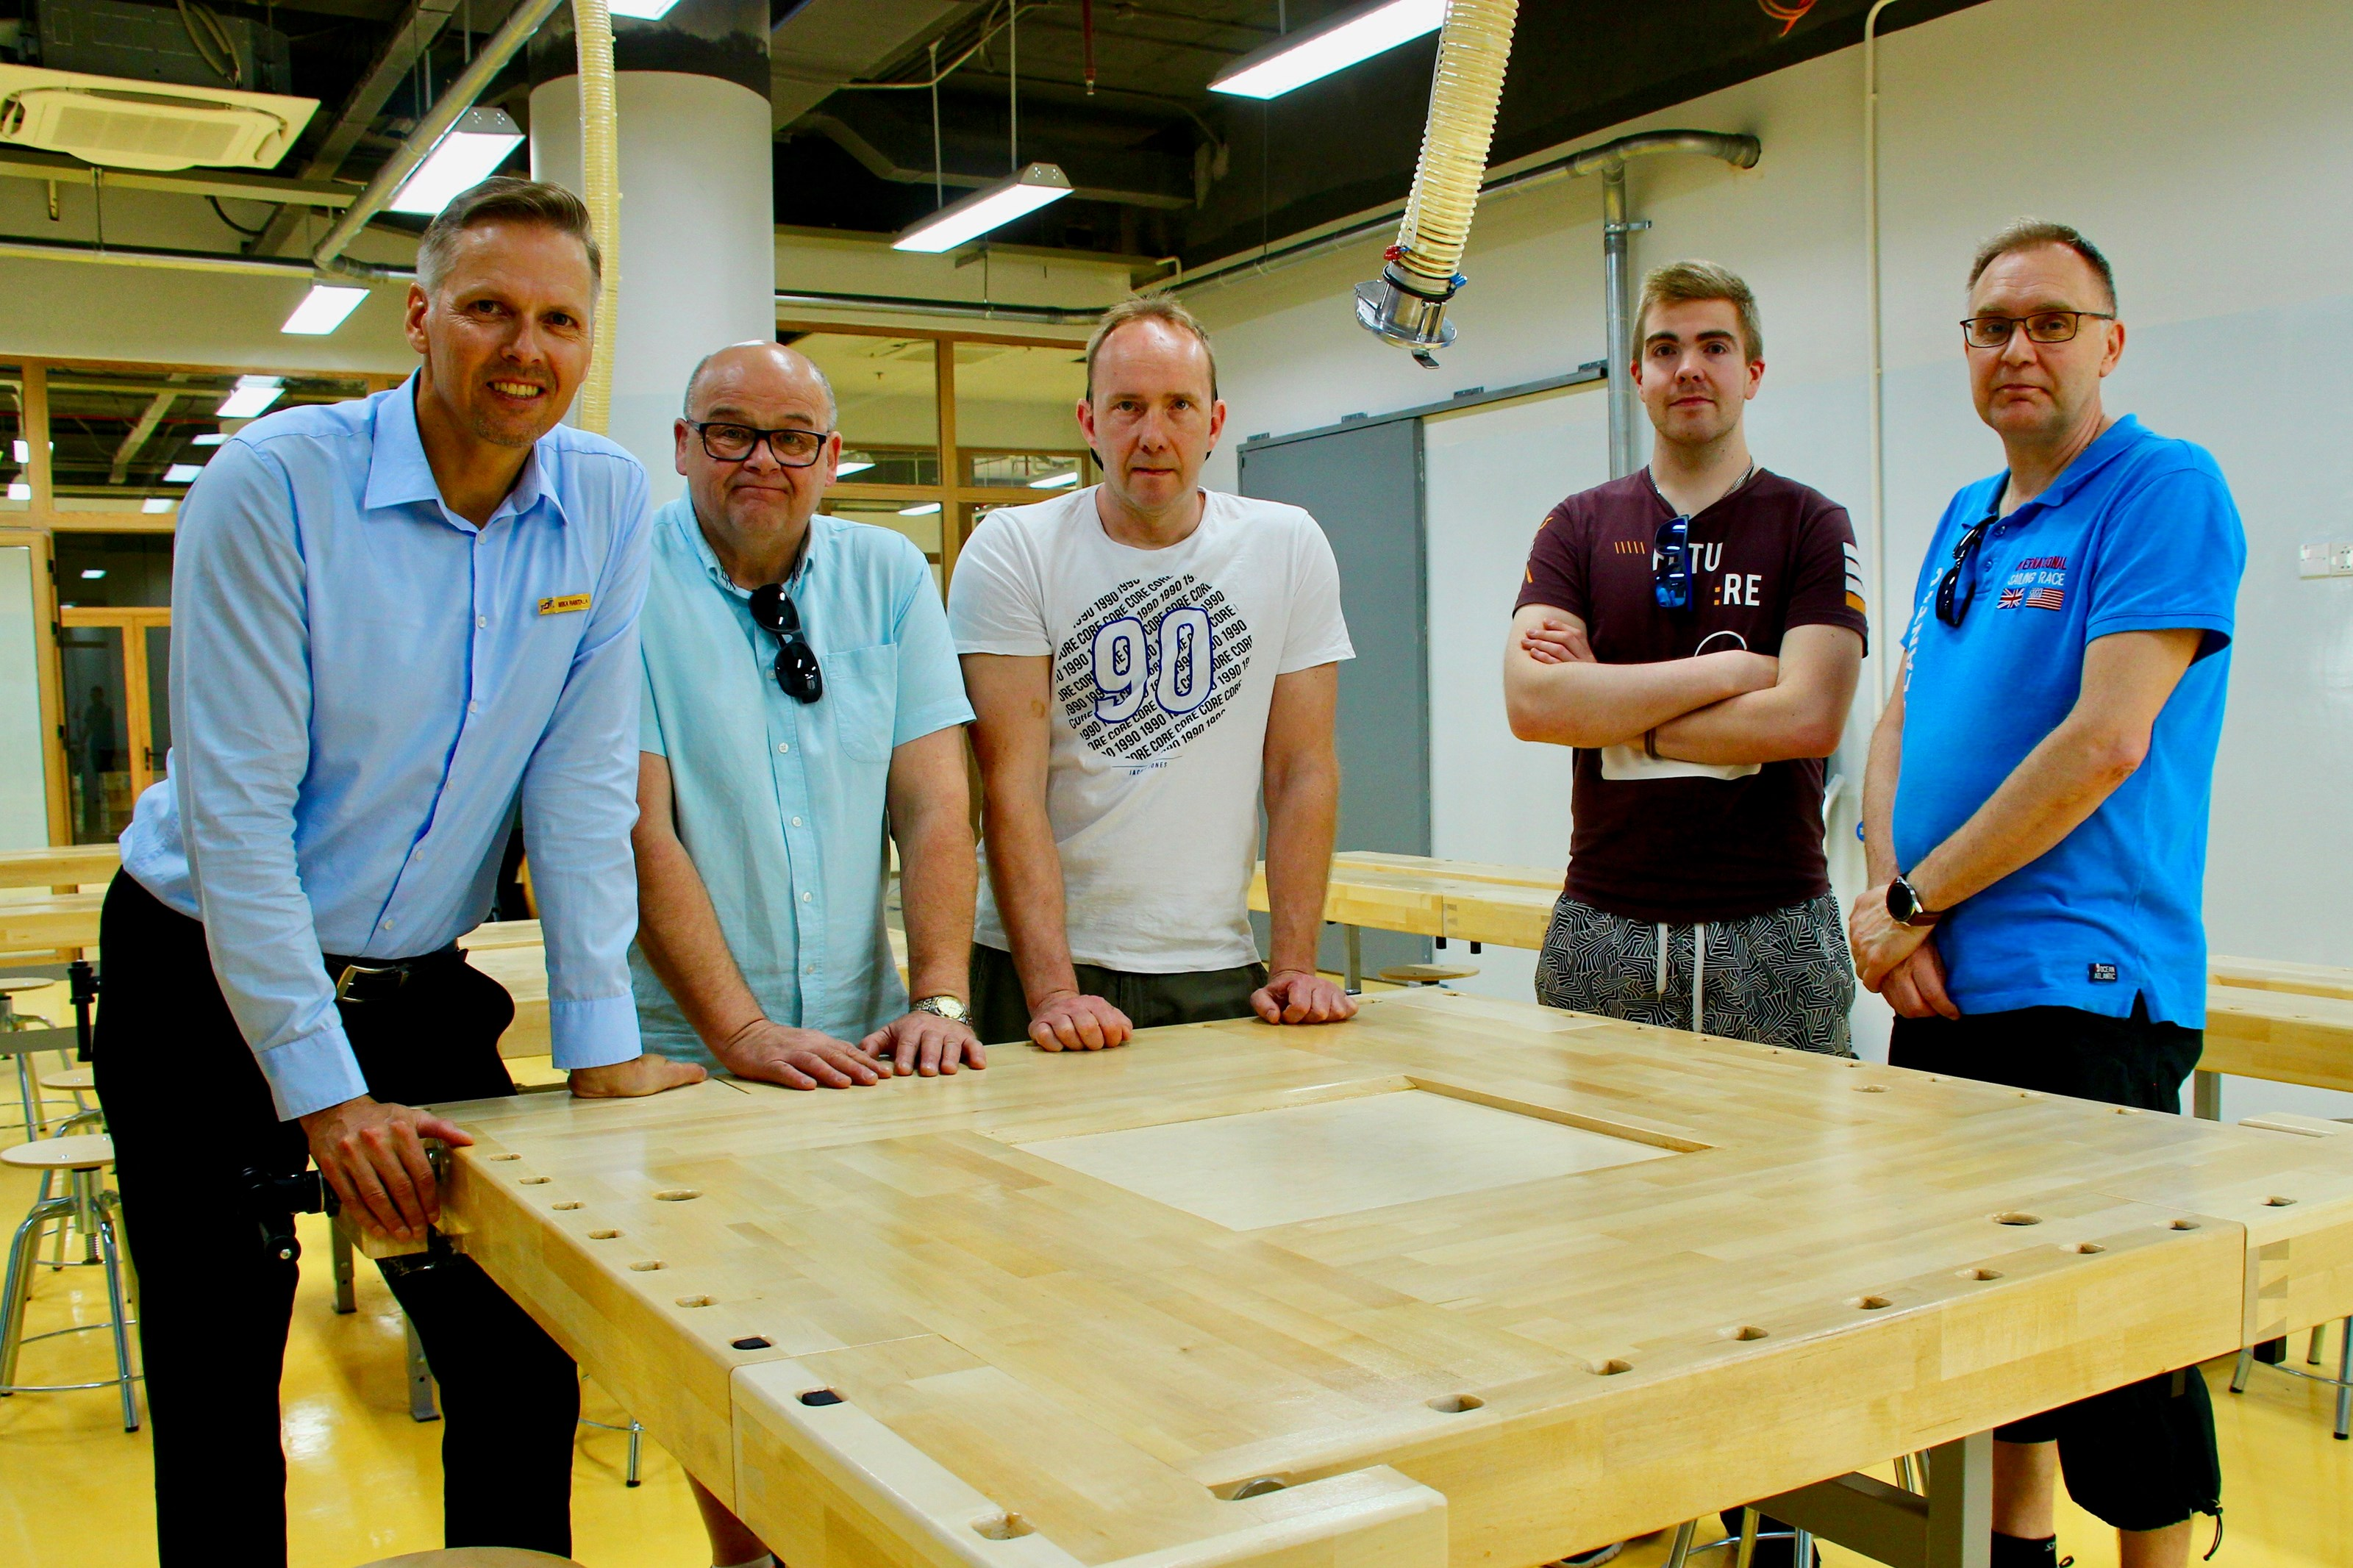 Bäck & Co's mechanics Kari Karjalainen, Johnny Willfors, Matti Laasanen, and Johnny Sjöskog have completed the technical workspace at the Vietnam-Finland School. At the left is Mika Rantala, who works in the project as a Finnish Educational Expert.